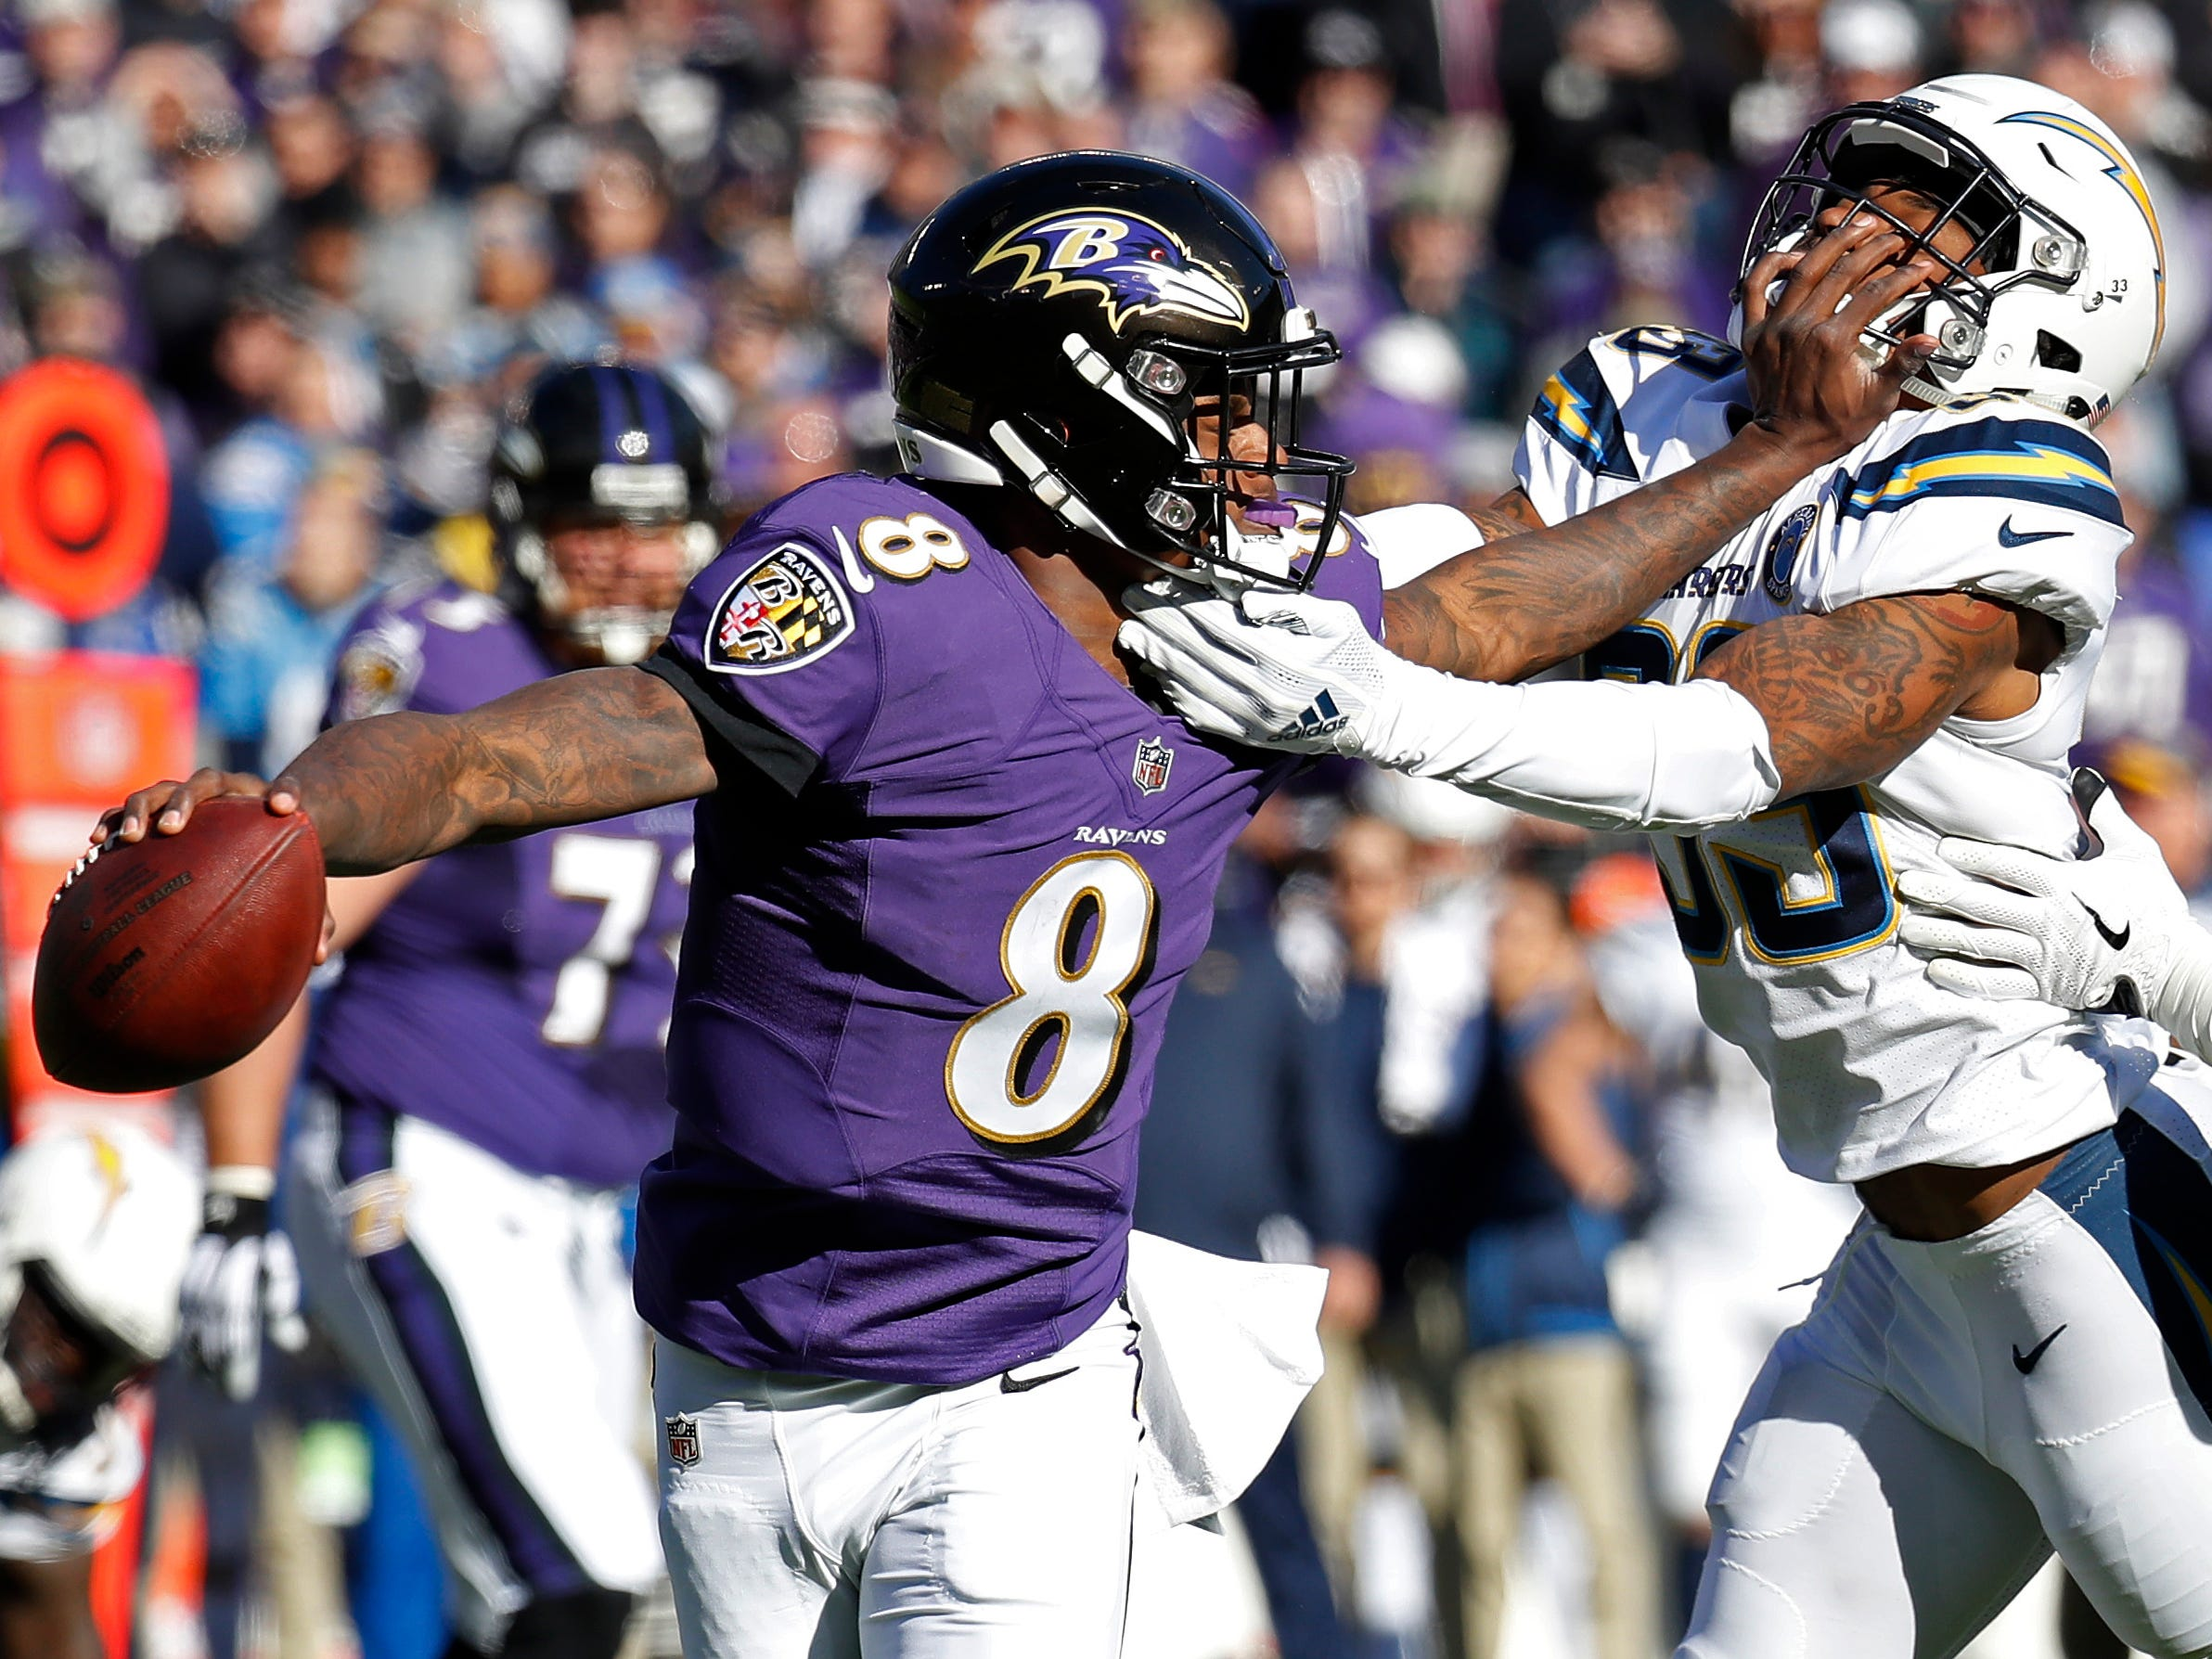 Wild-card playoffs: Baltimore Ravens quarterback Lamar Jackson scrambles from Los Angeles Chargers free safety Derwin James in the first quarter of the AFC wild-card playoff game at M&T Bank Stadium. The Chargers won the game, 23-17.